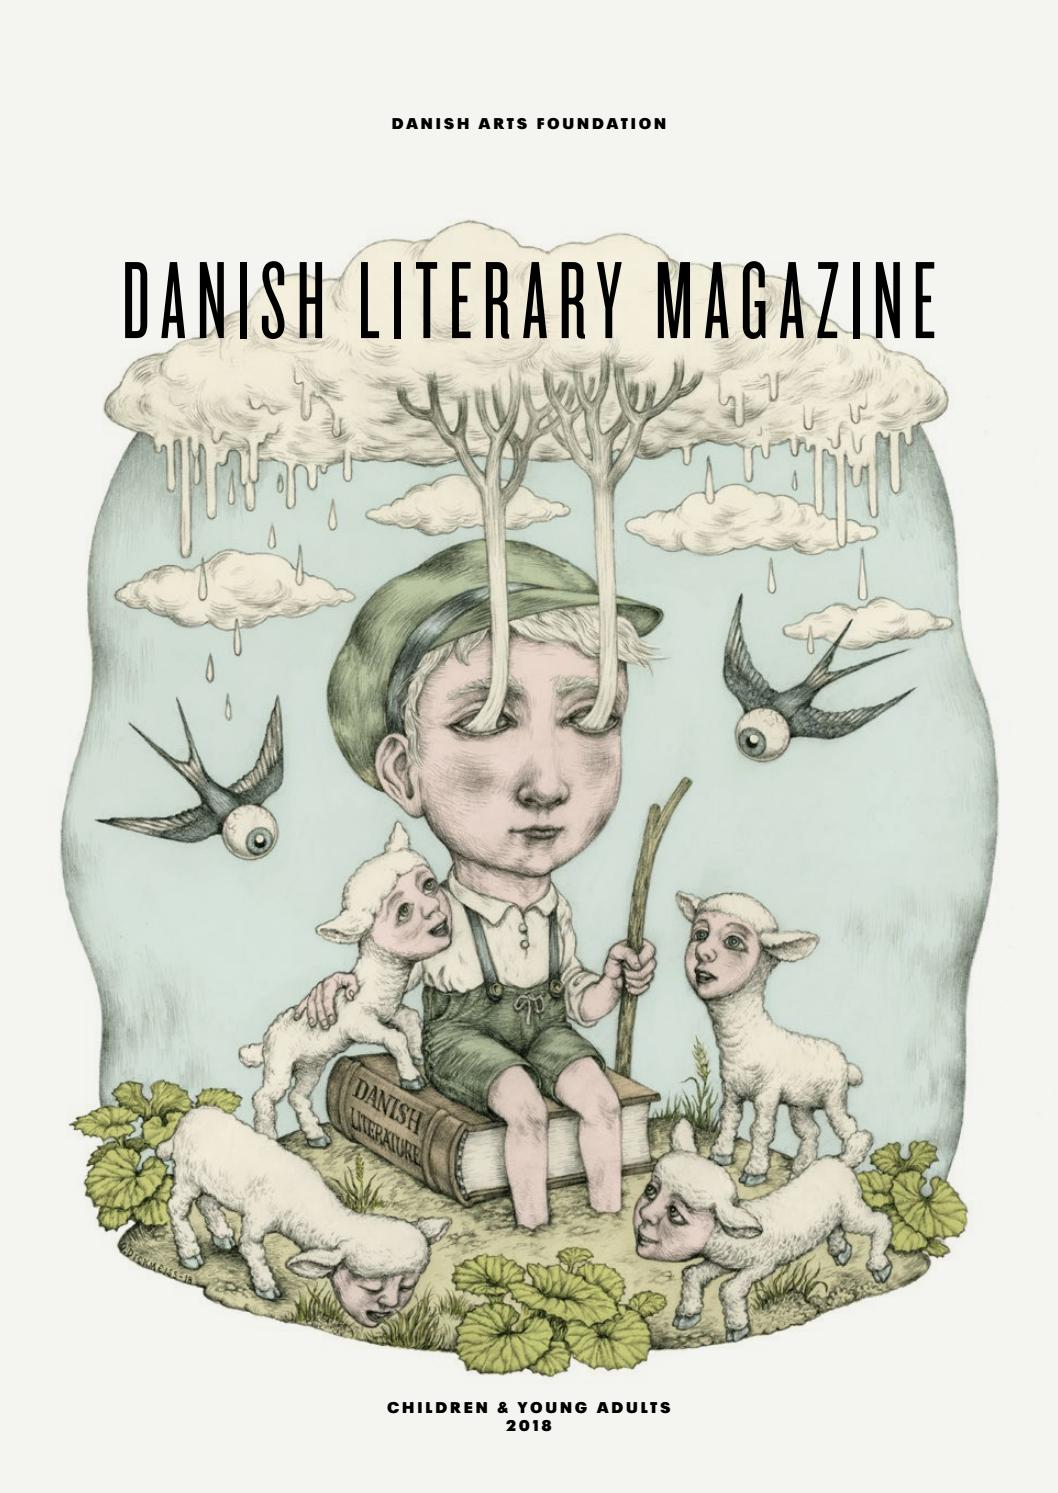 Danish literary magazine spring 2018 children and young adults by ...